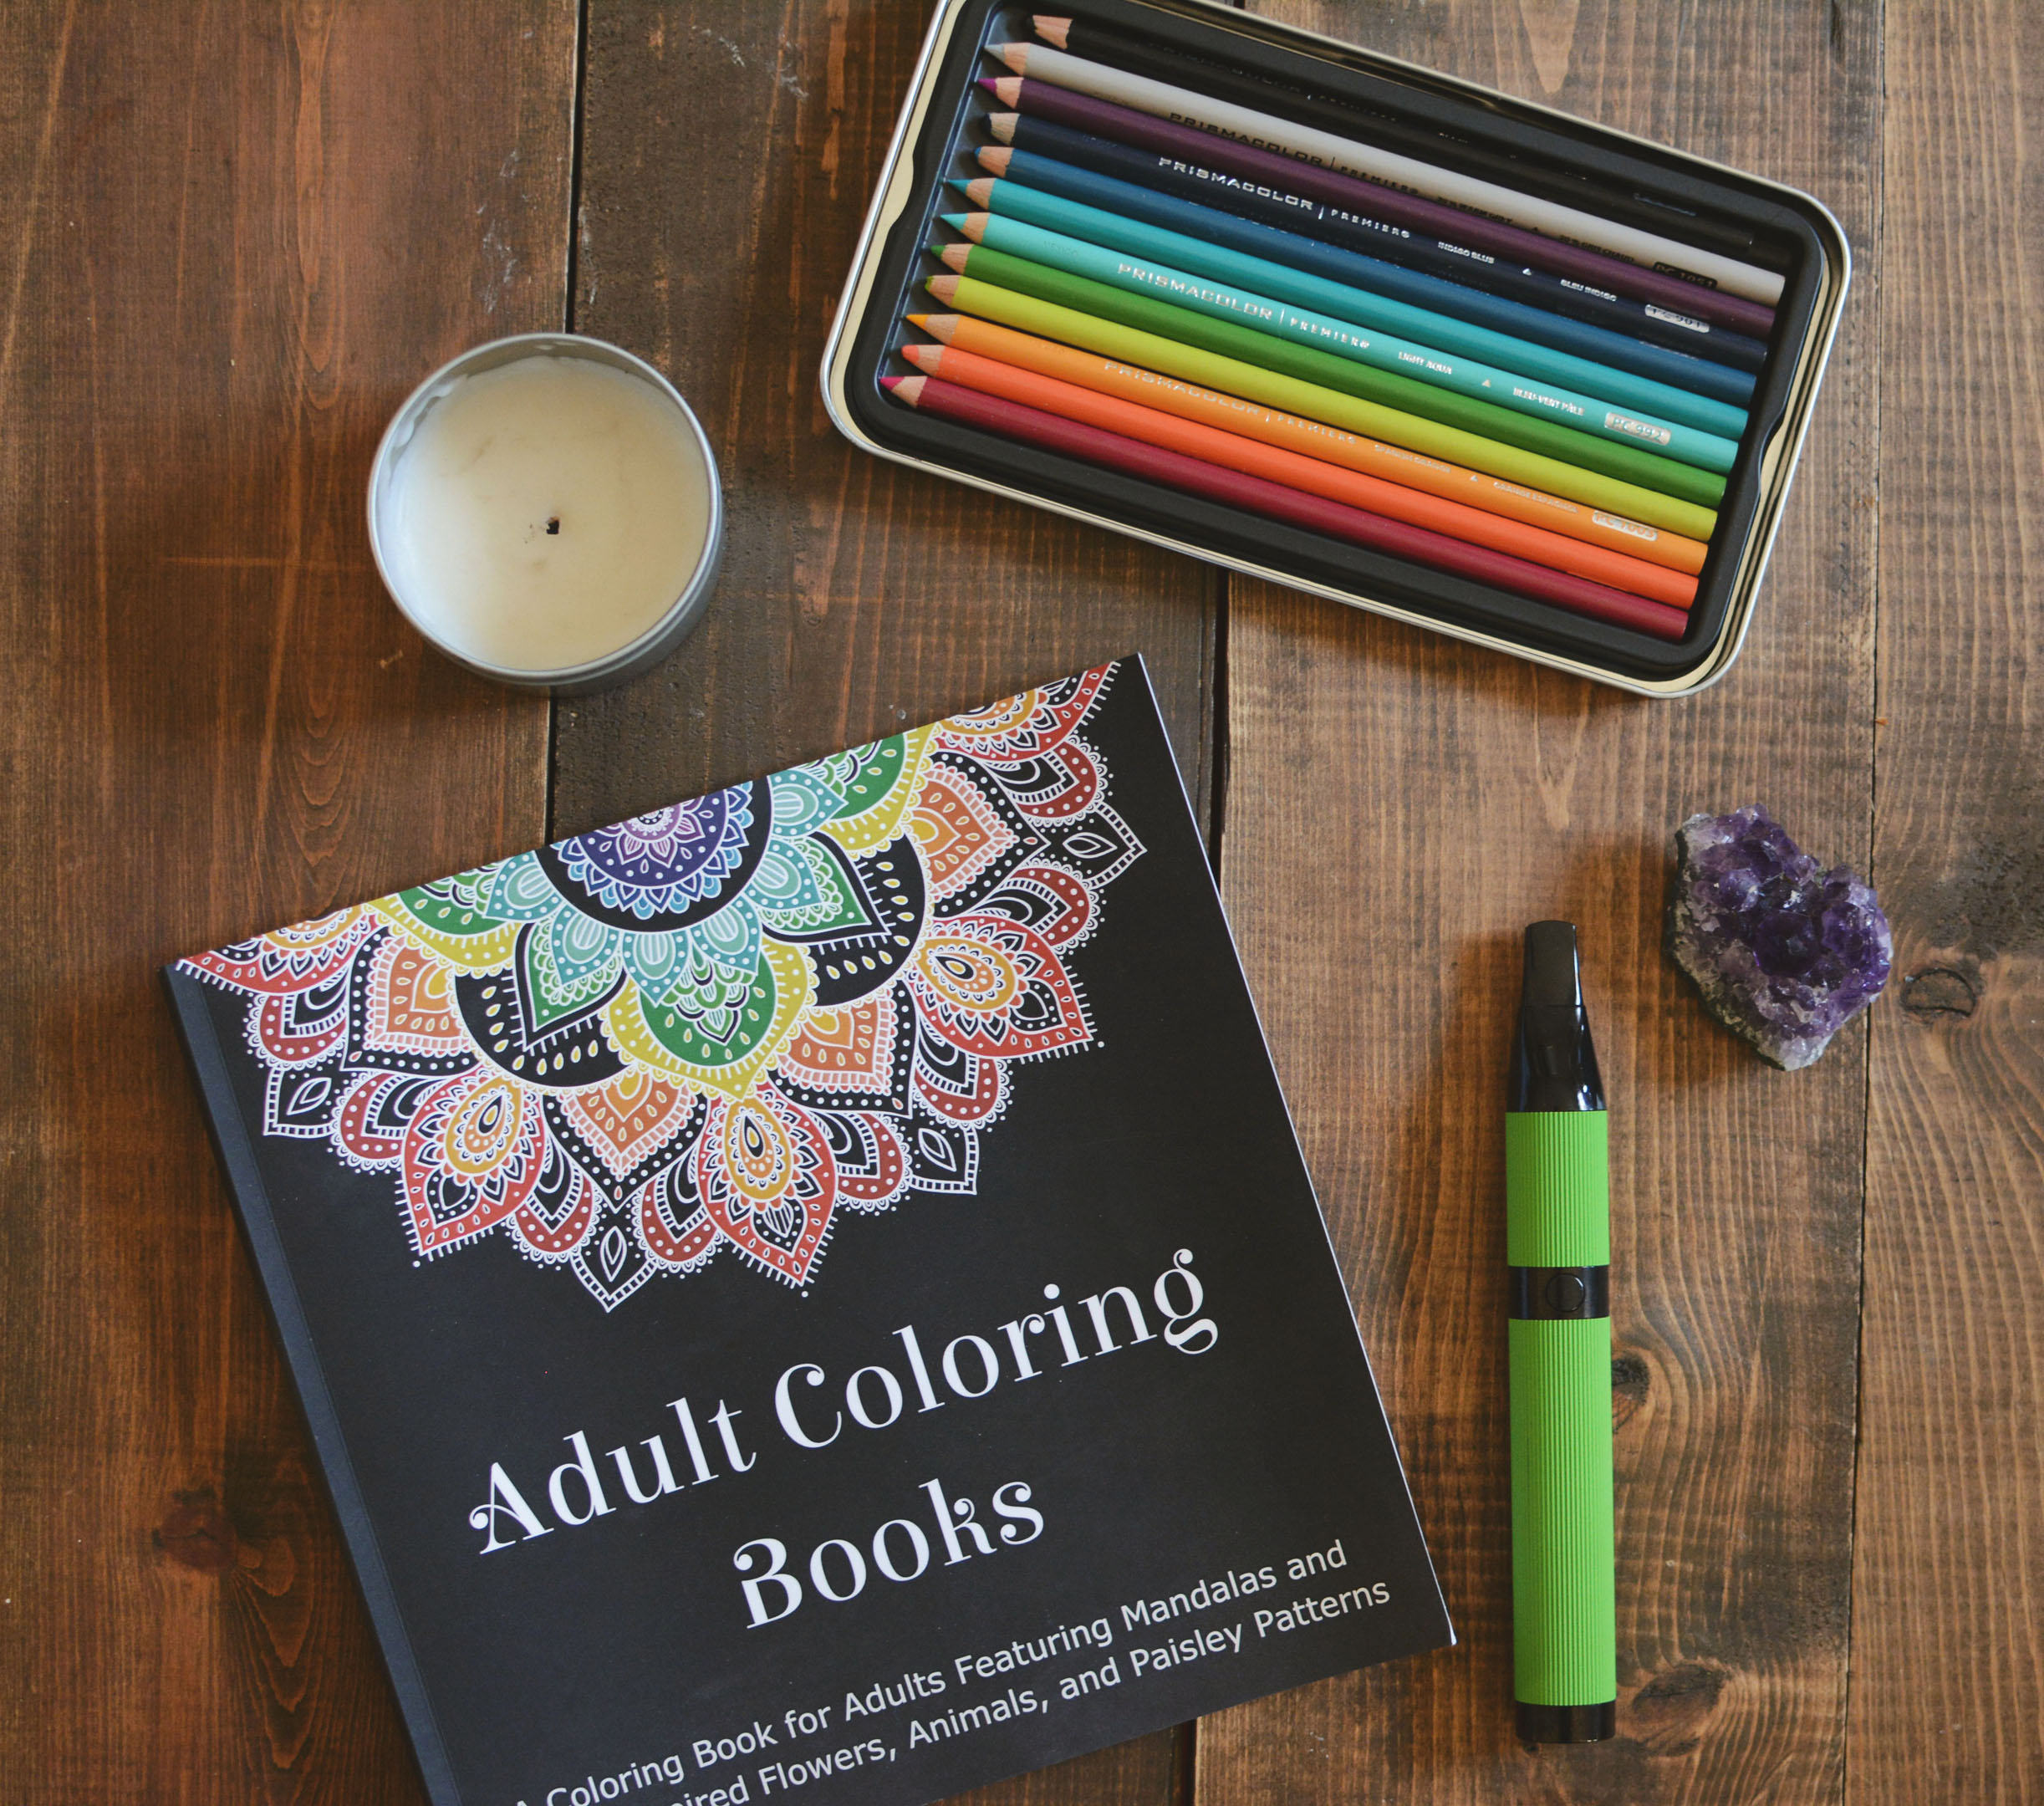 Adult Coloring Book  (gifted by an amazing friend, but also found on Amazon) /  Kur Candle  (also gifted by same amazing friend) /  Prismacolor Colored Pencils  /  Amethyst from Friends NYC  /  CloudV Phantom Herbal Vaporizer